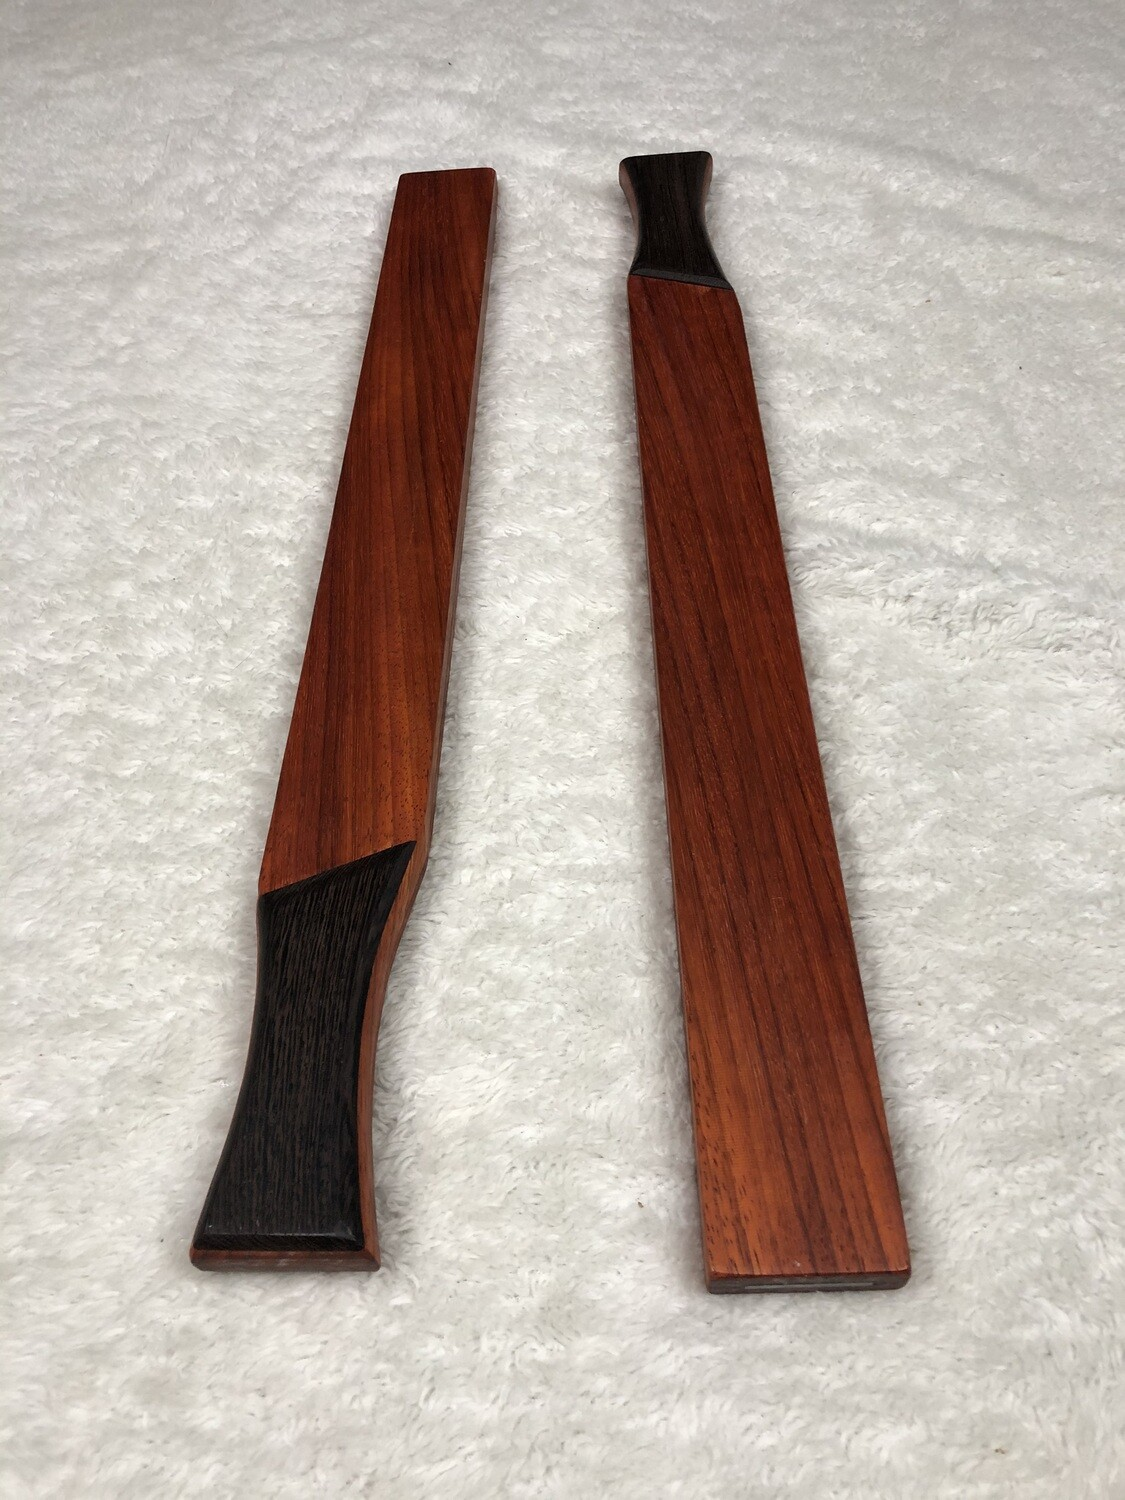 Tai Chi Sticks - 1.5 lbs - Padauk with Wenge Handles